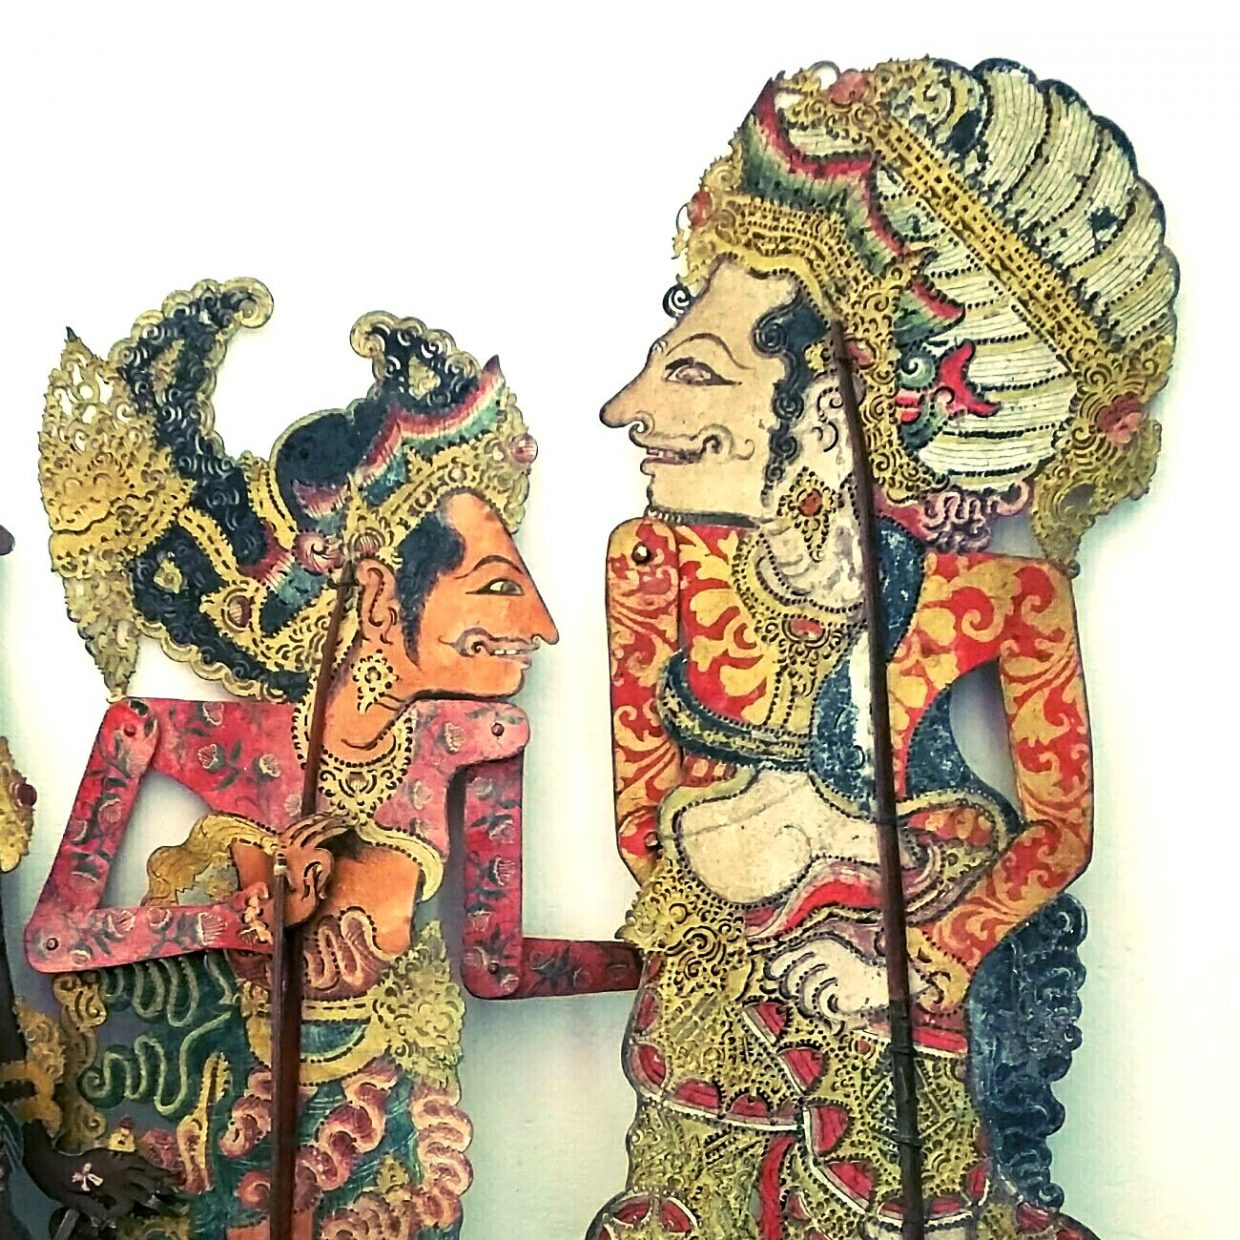 Antique Balinese shadow puppets